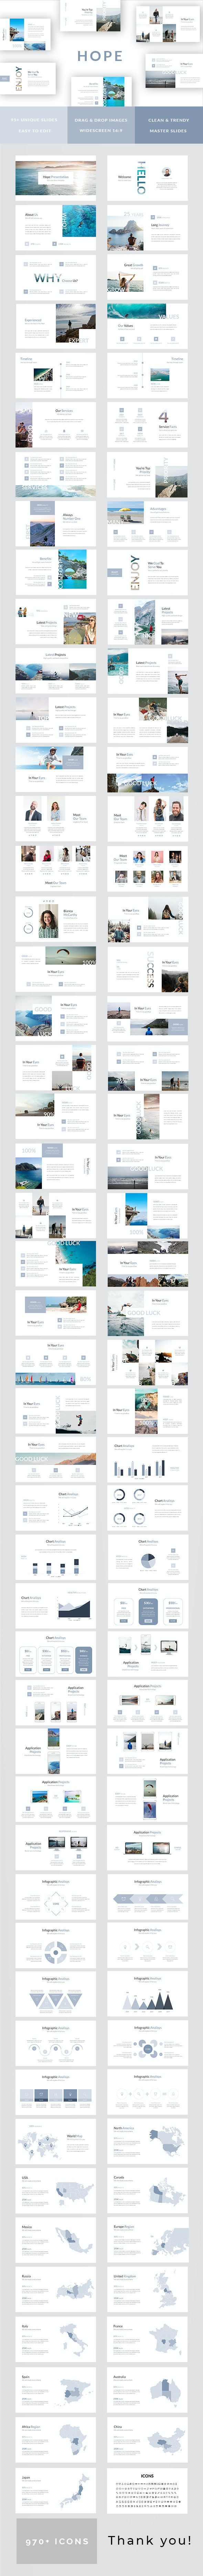 Hope Powerpoint Template - PowerPoint Templates Presentation Templates